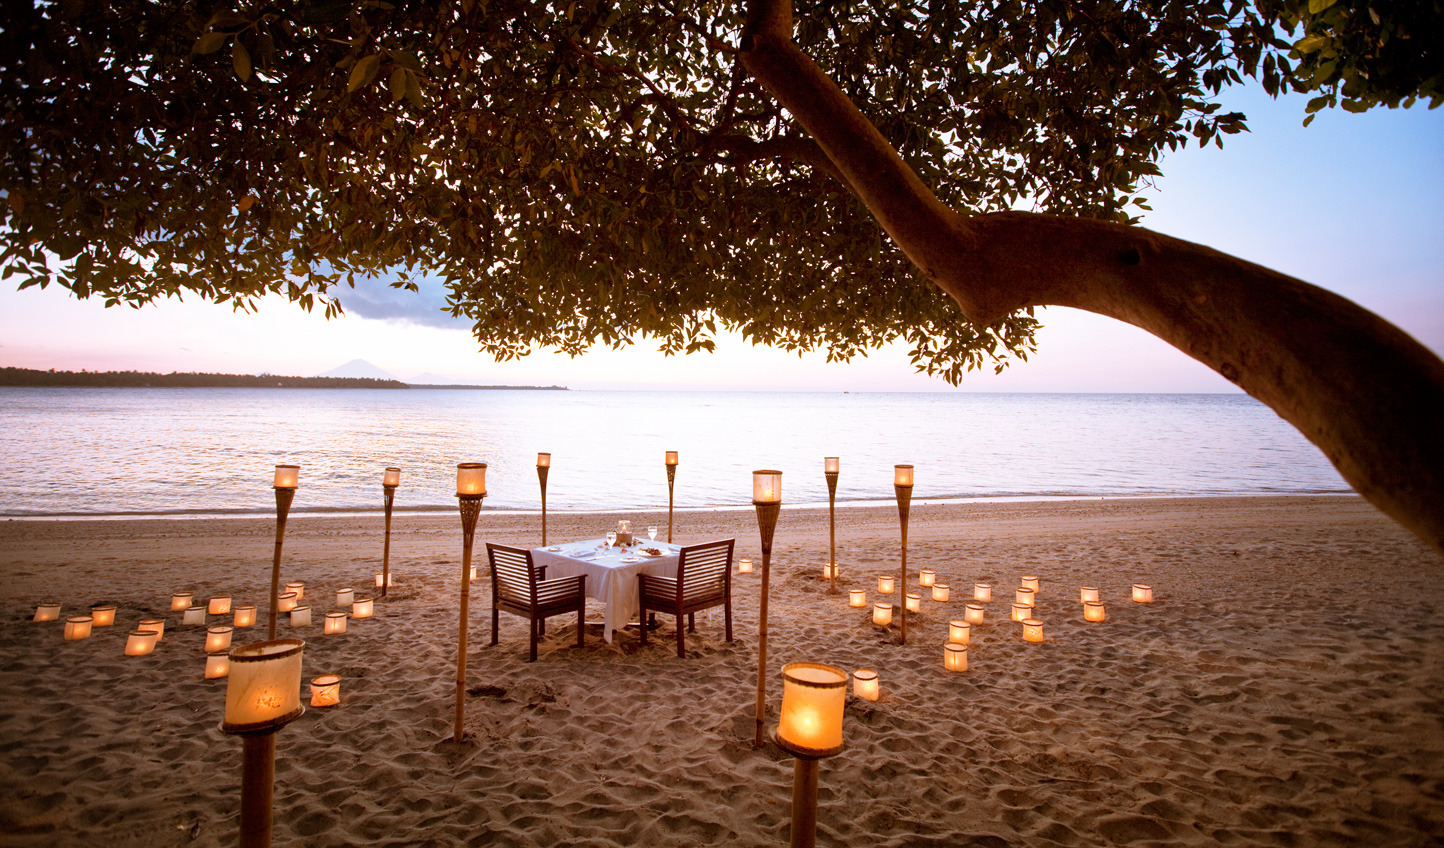 Find a quiet corner of the beach for a romantic dinner for two